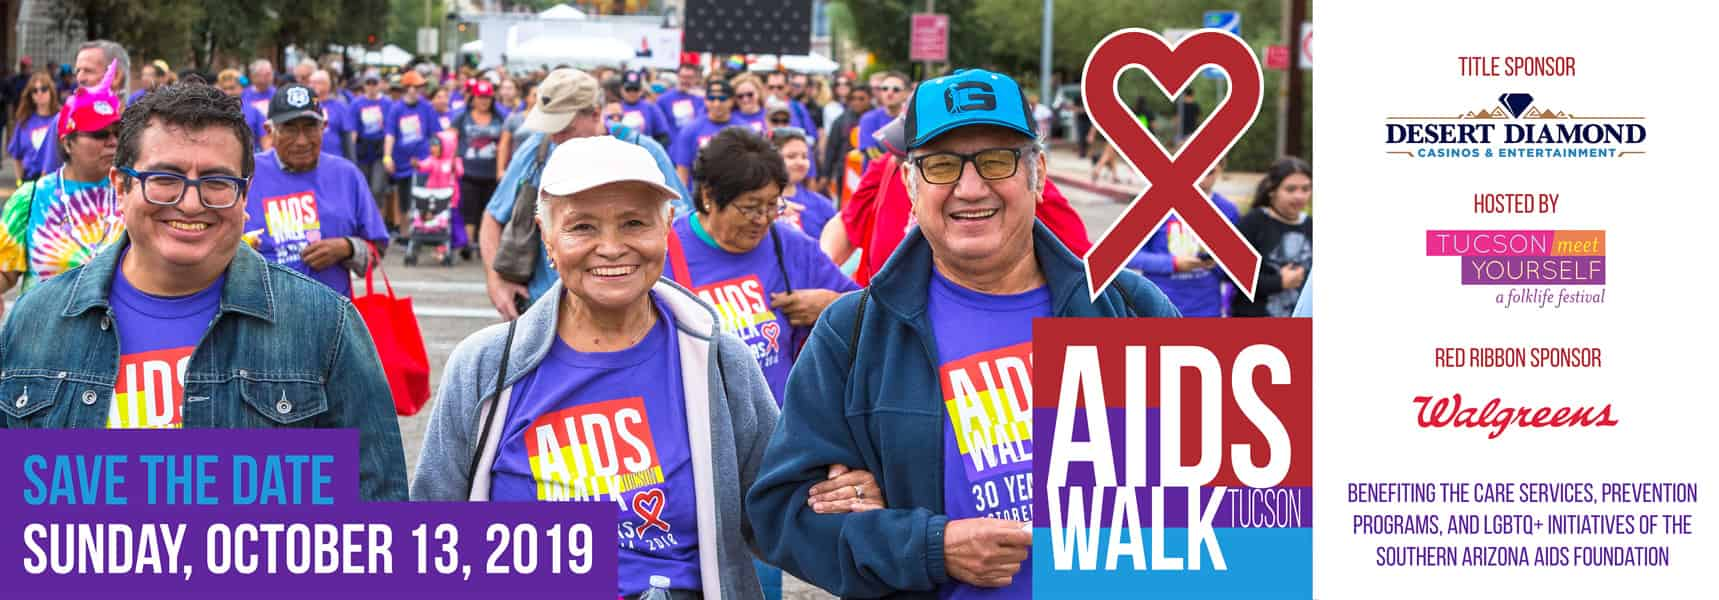 AIDS Walk Web Banner